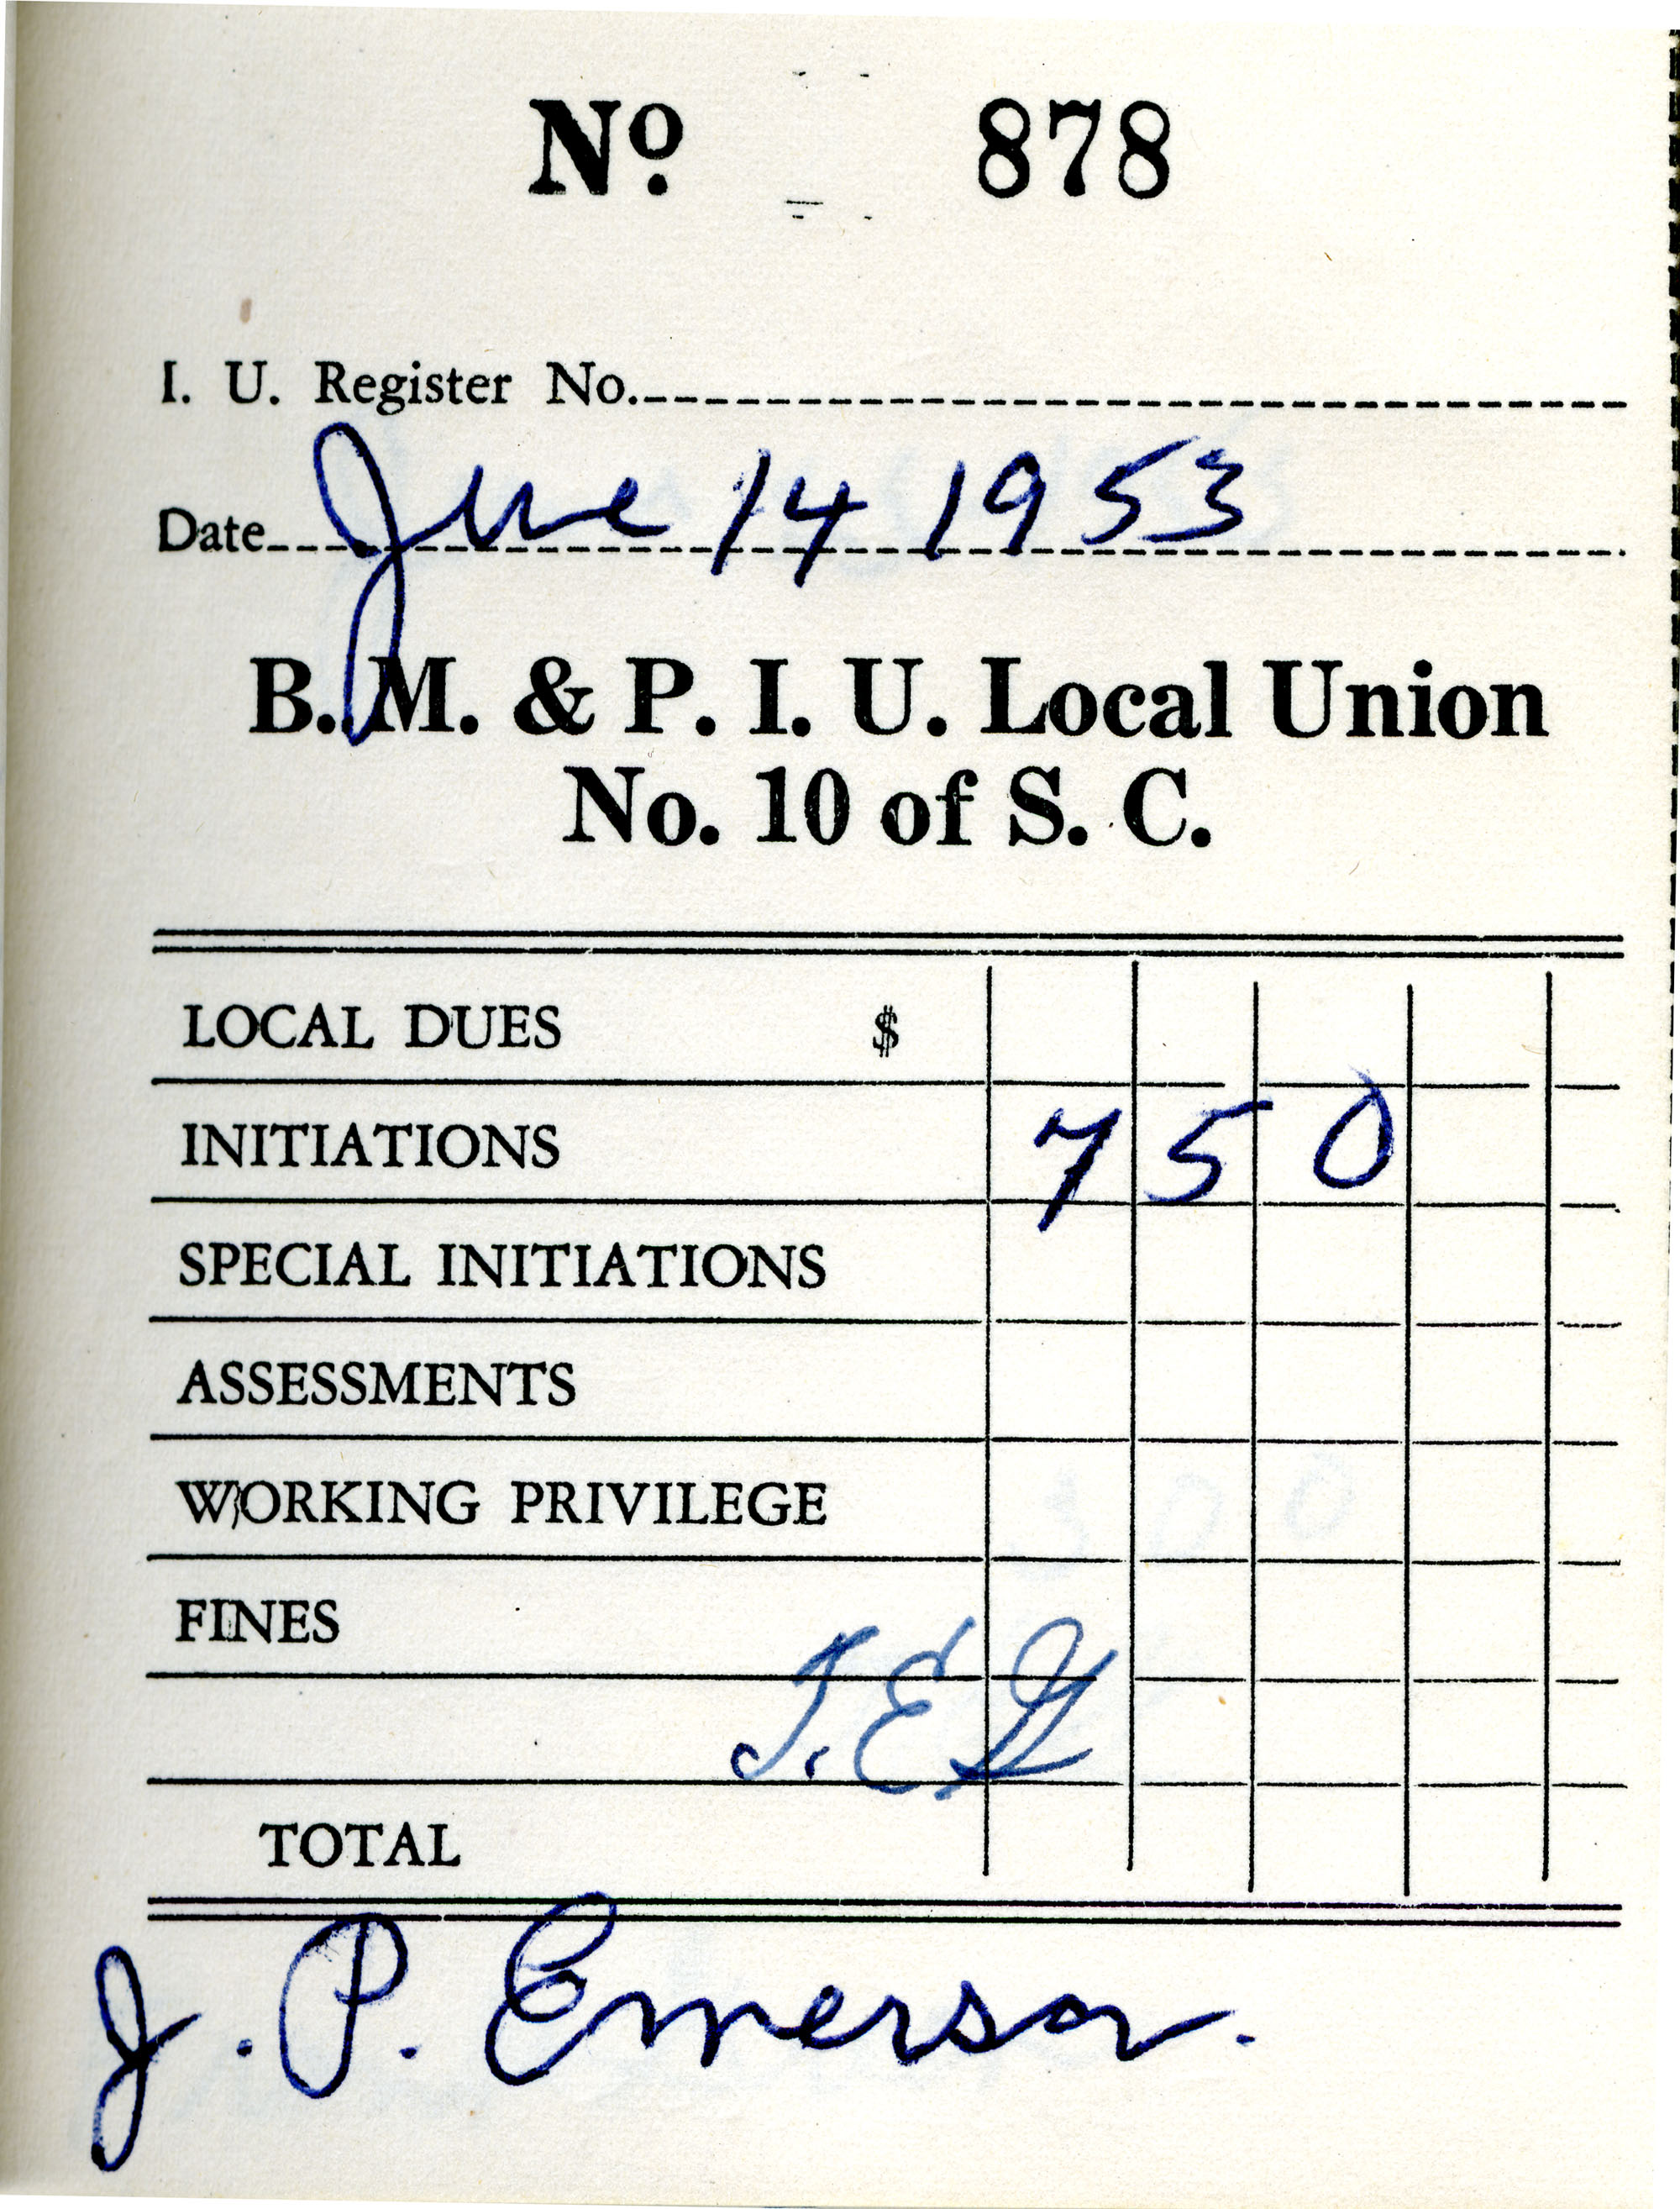 Receipt Book 3, Page 23